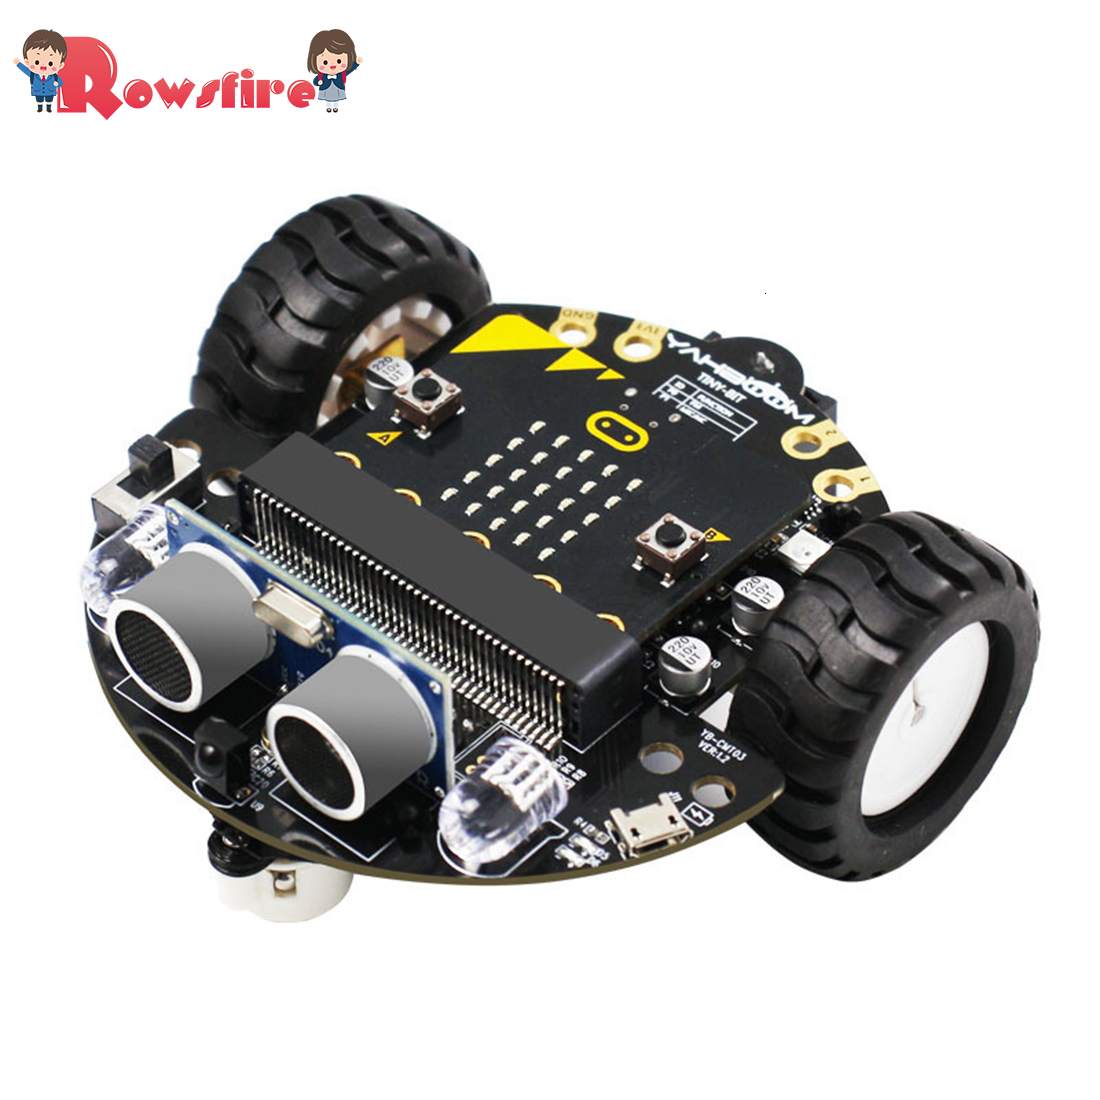 DIY Obstacle Avoidance Smart Programmable Robot Car Educational Learning Kit With Mainboard For Micro:bit